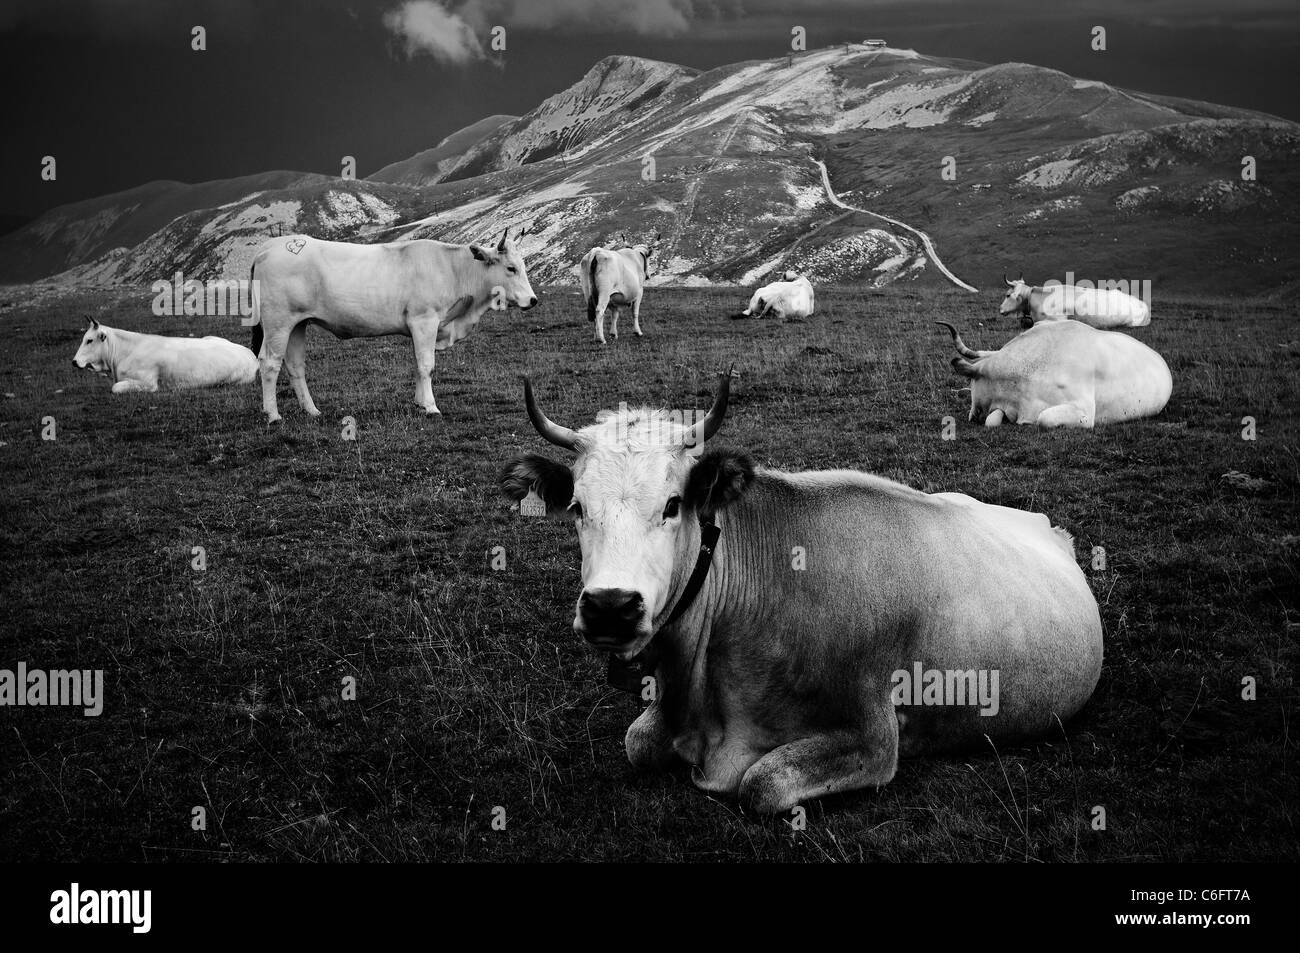 Herd of cows on a mountain - Stock Image